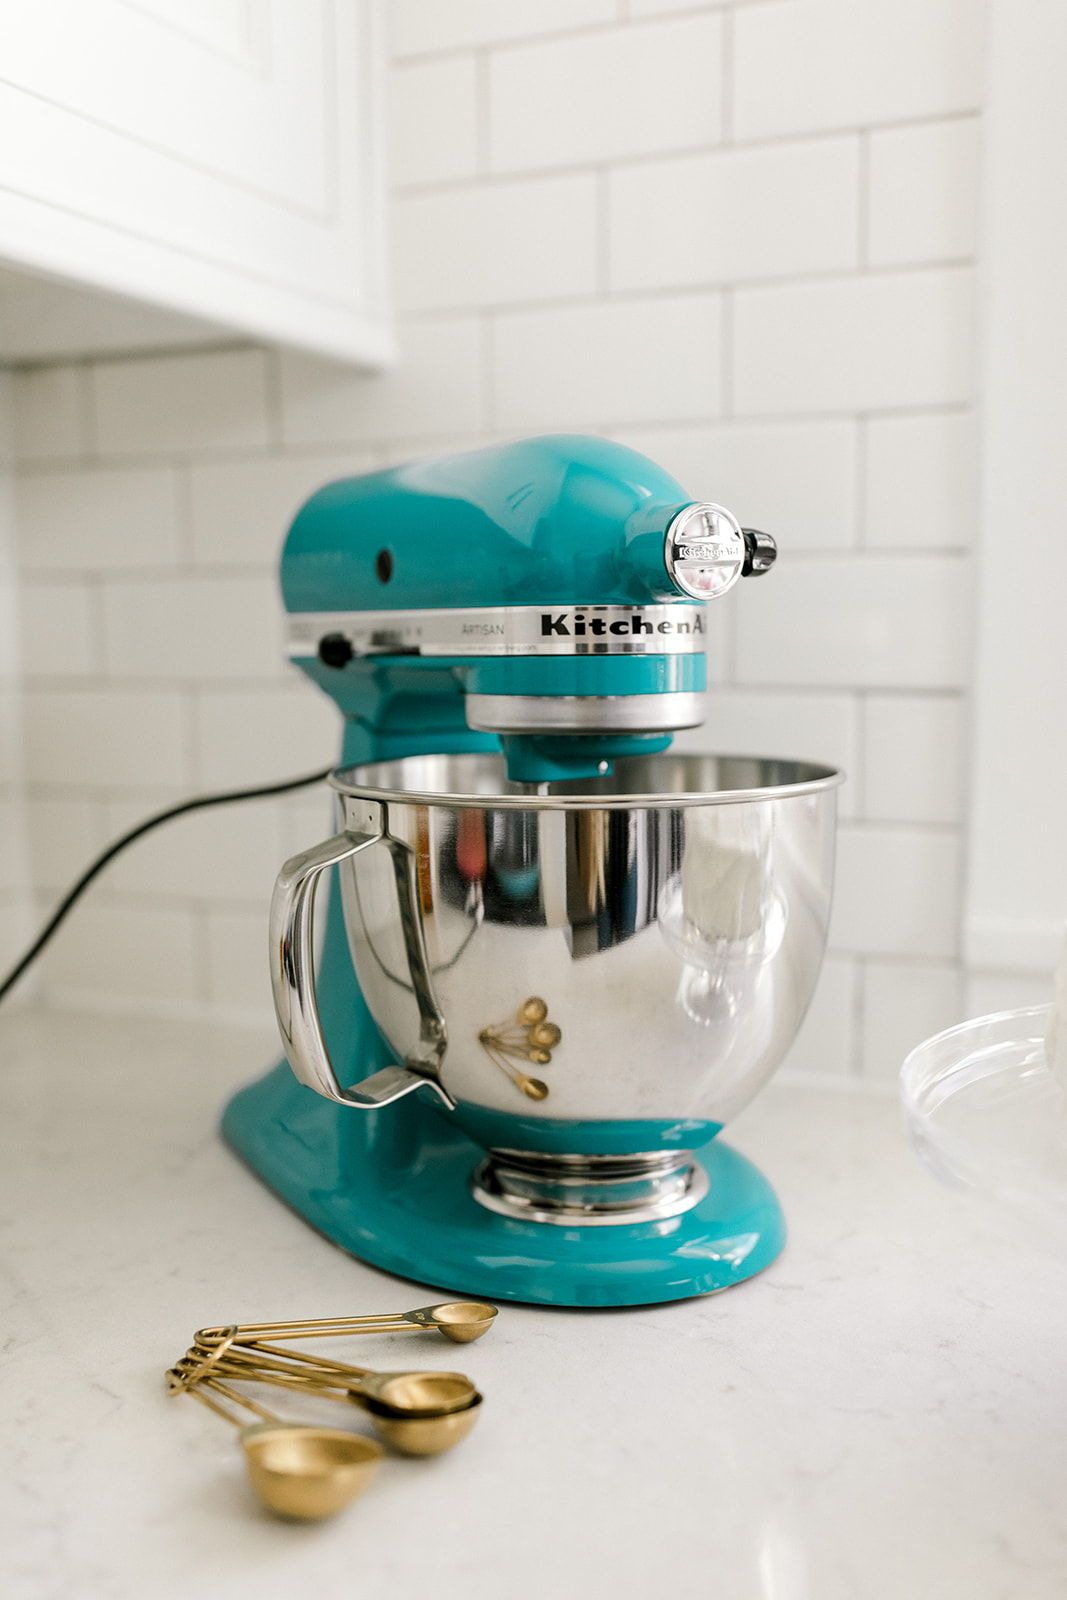 Kitchenaid 174 Artisan 174 5 Qt Stand Mixer In Ocean Drive In